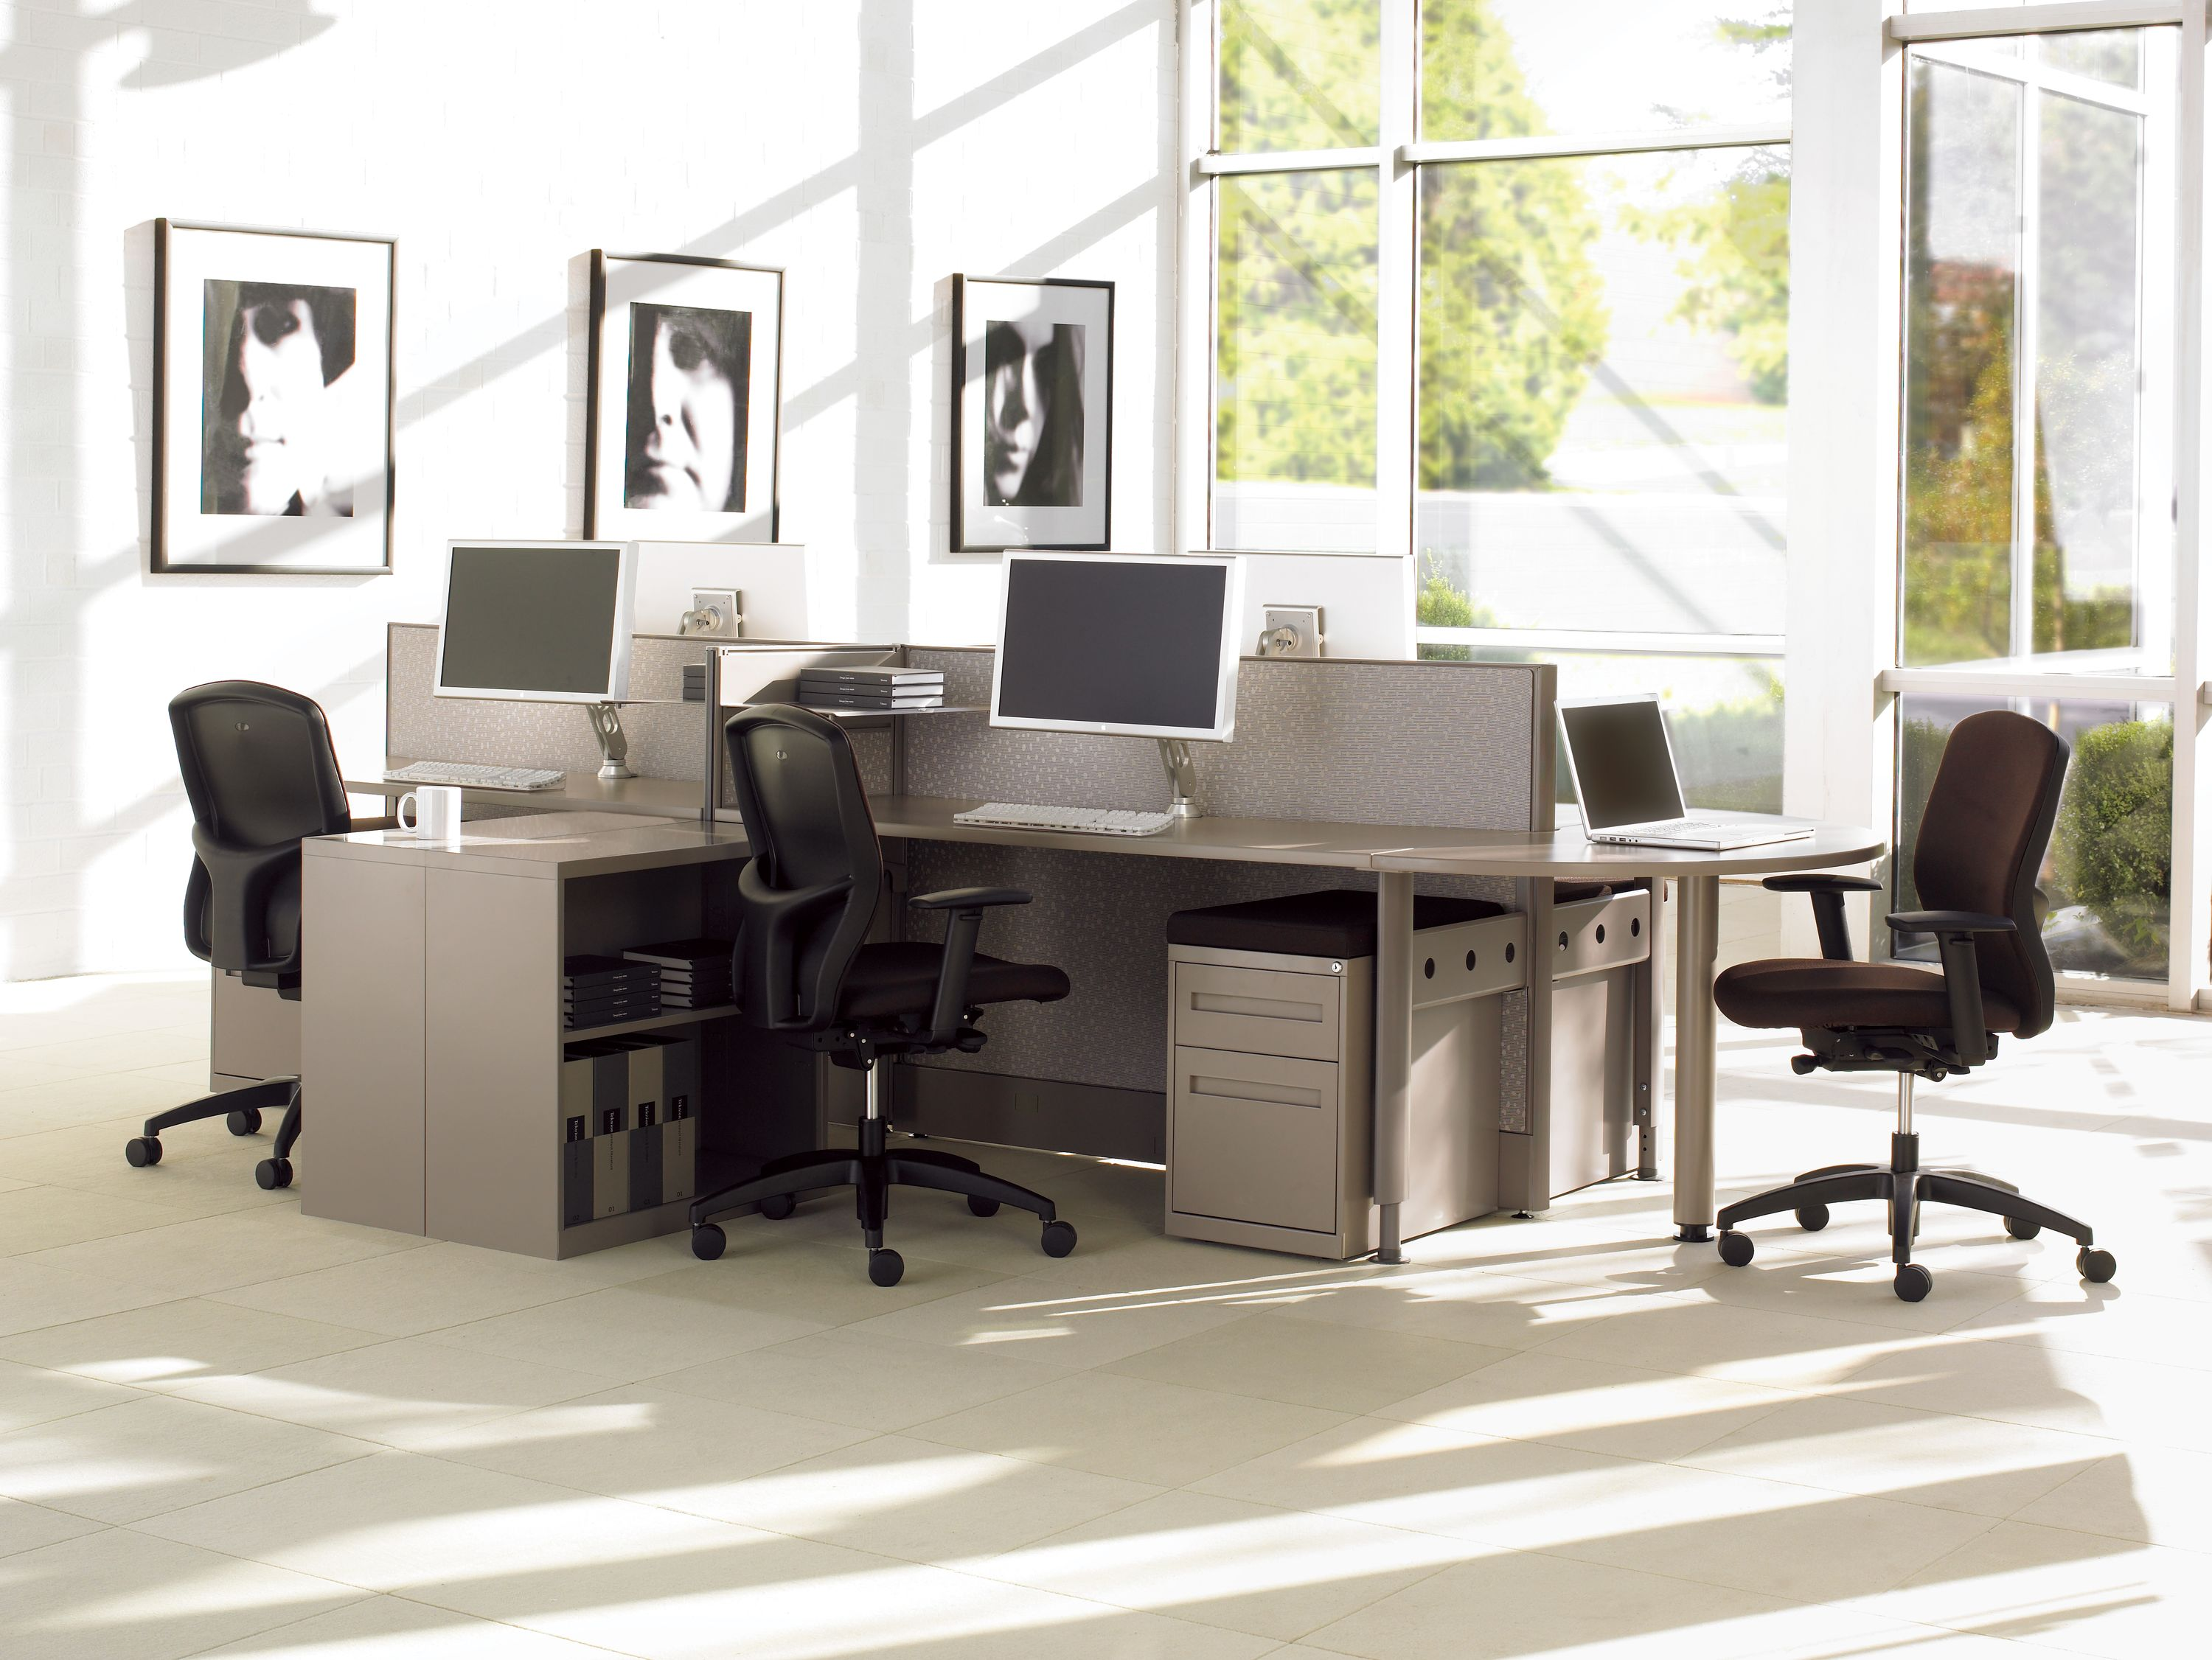 Boulevard Office Furniture Cluster